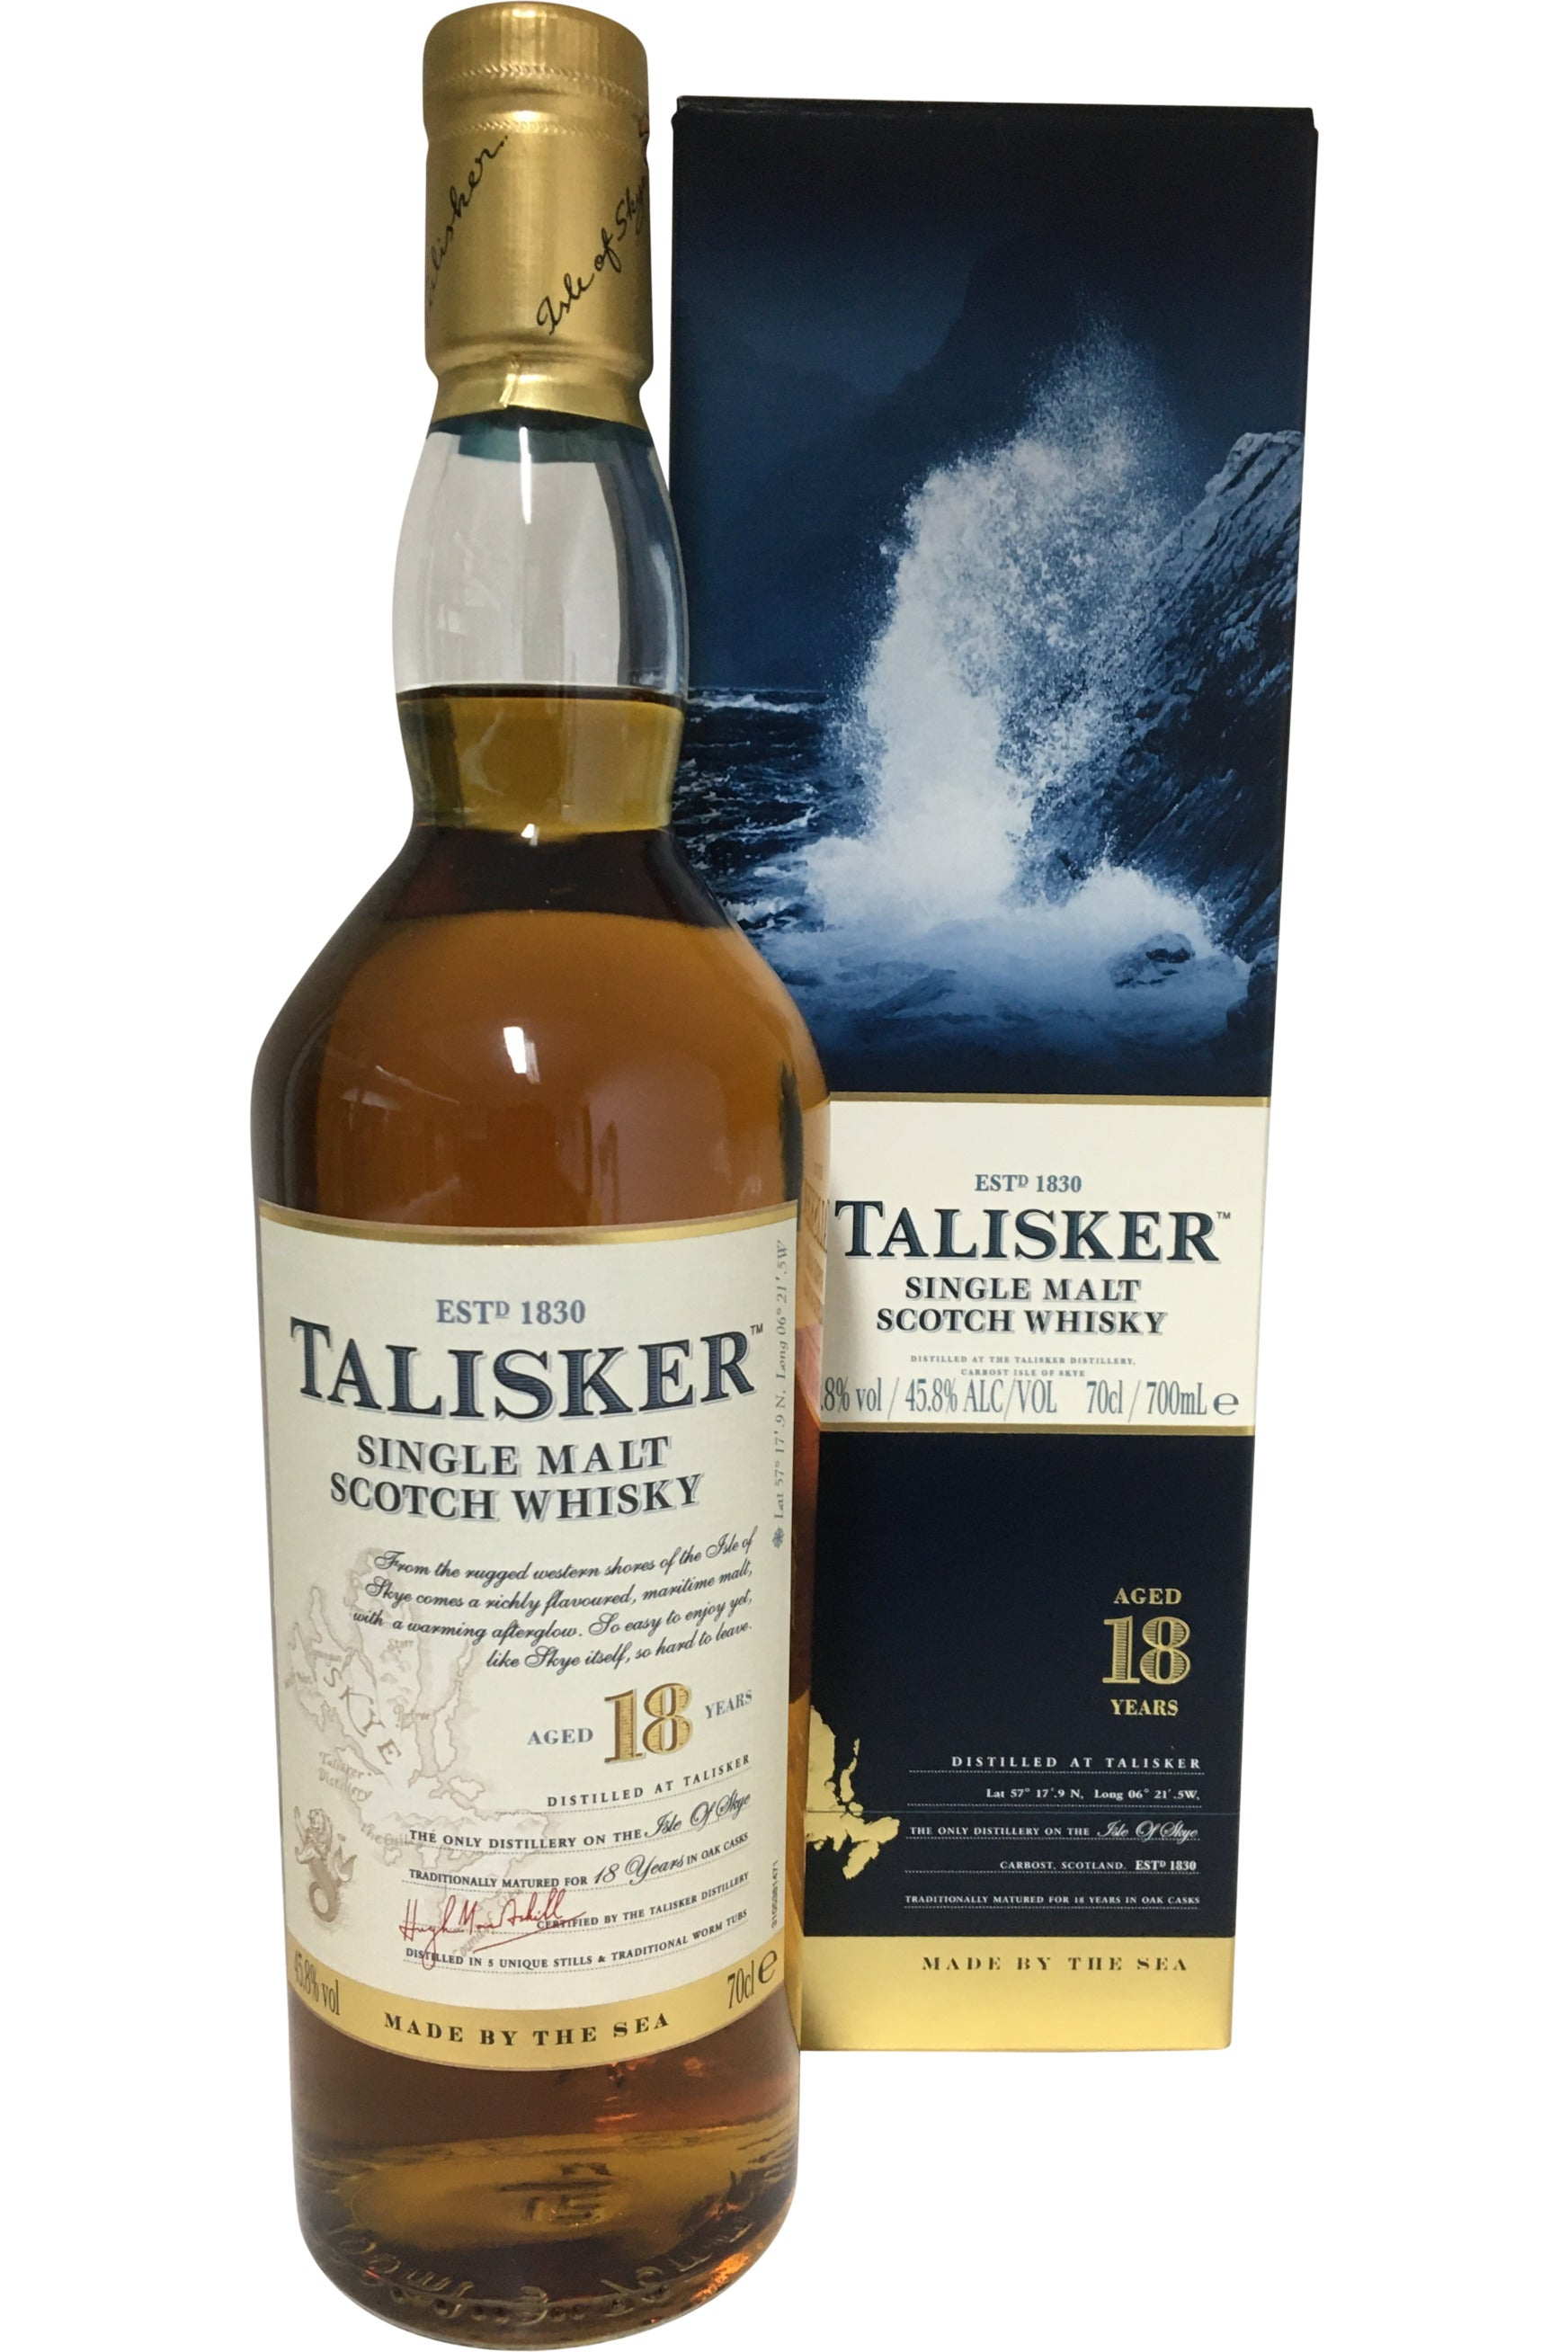 Talisker 18 Year Old - 45.8% 700ml